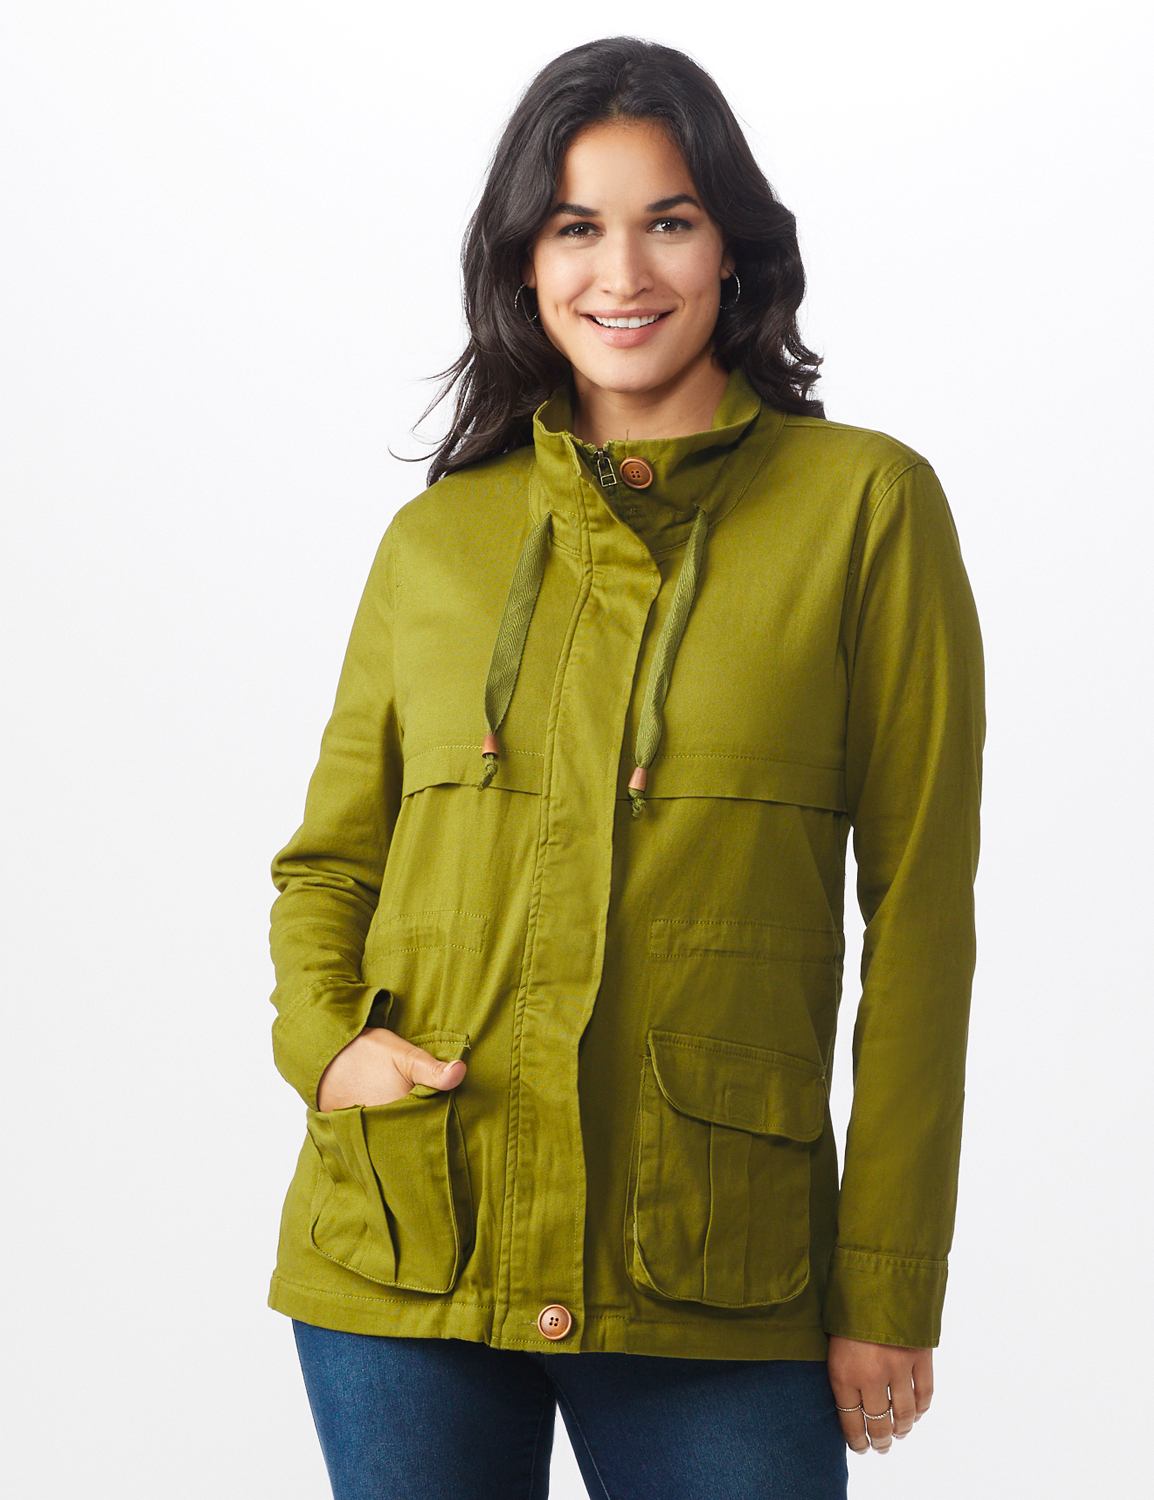 Zip Up Anorak with Cargo Pockets - Avocado - Front